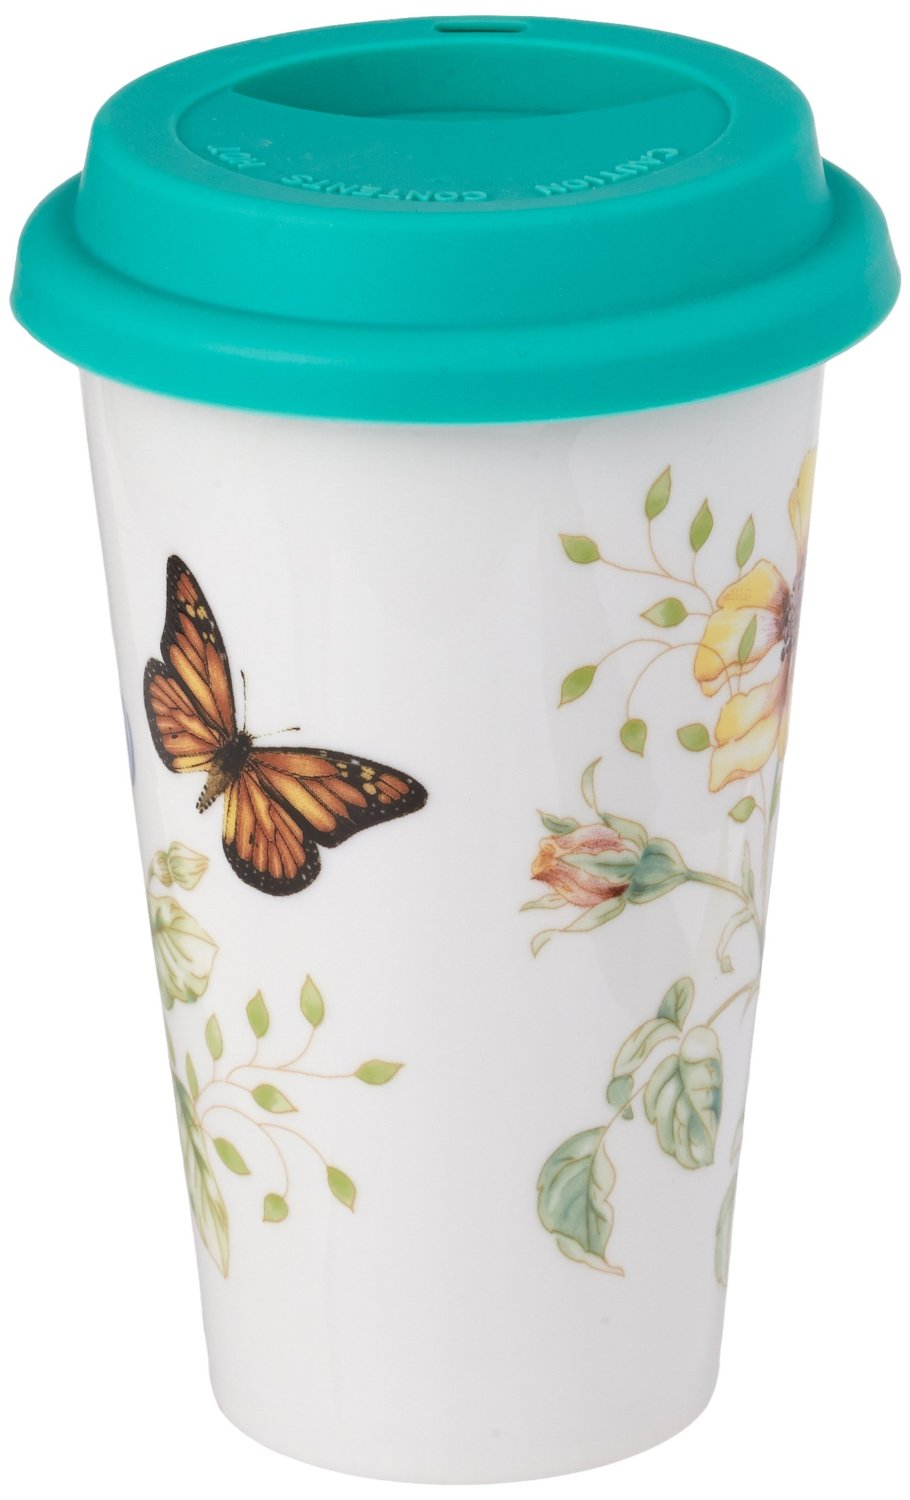 Lenox Butterfly Meadow Thermal Travel Mug G